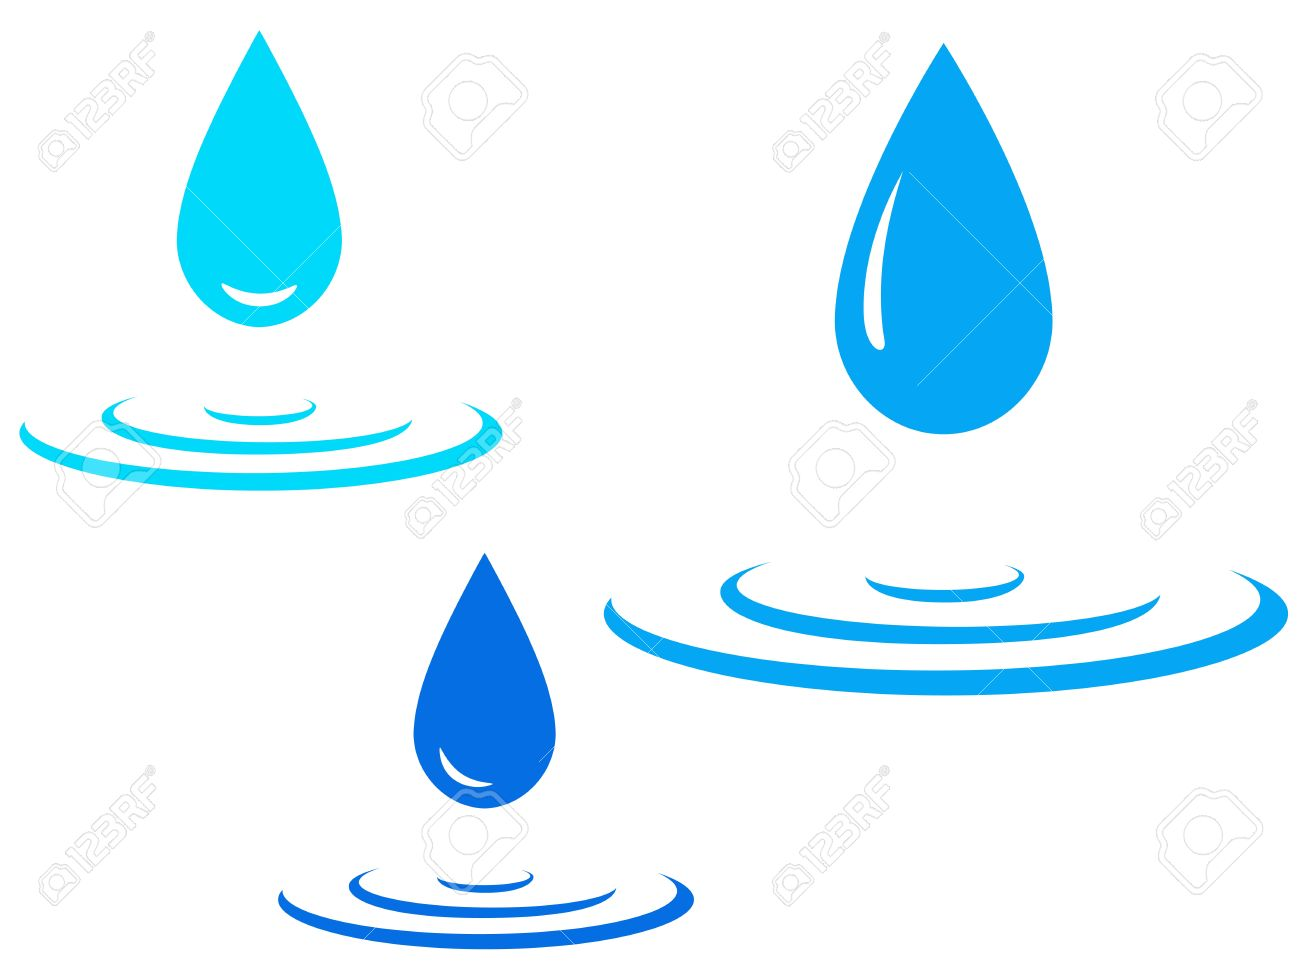 blue water splash and falling drop on white background royalty free rh 123rf com water droplet background vector water droplet vector image